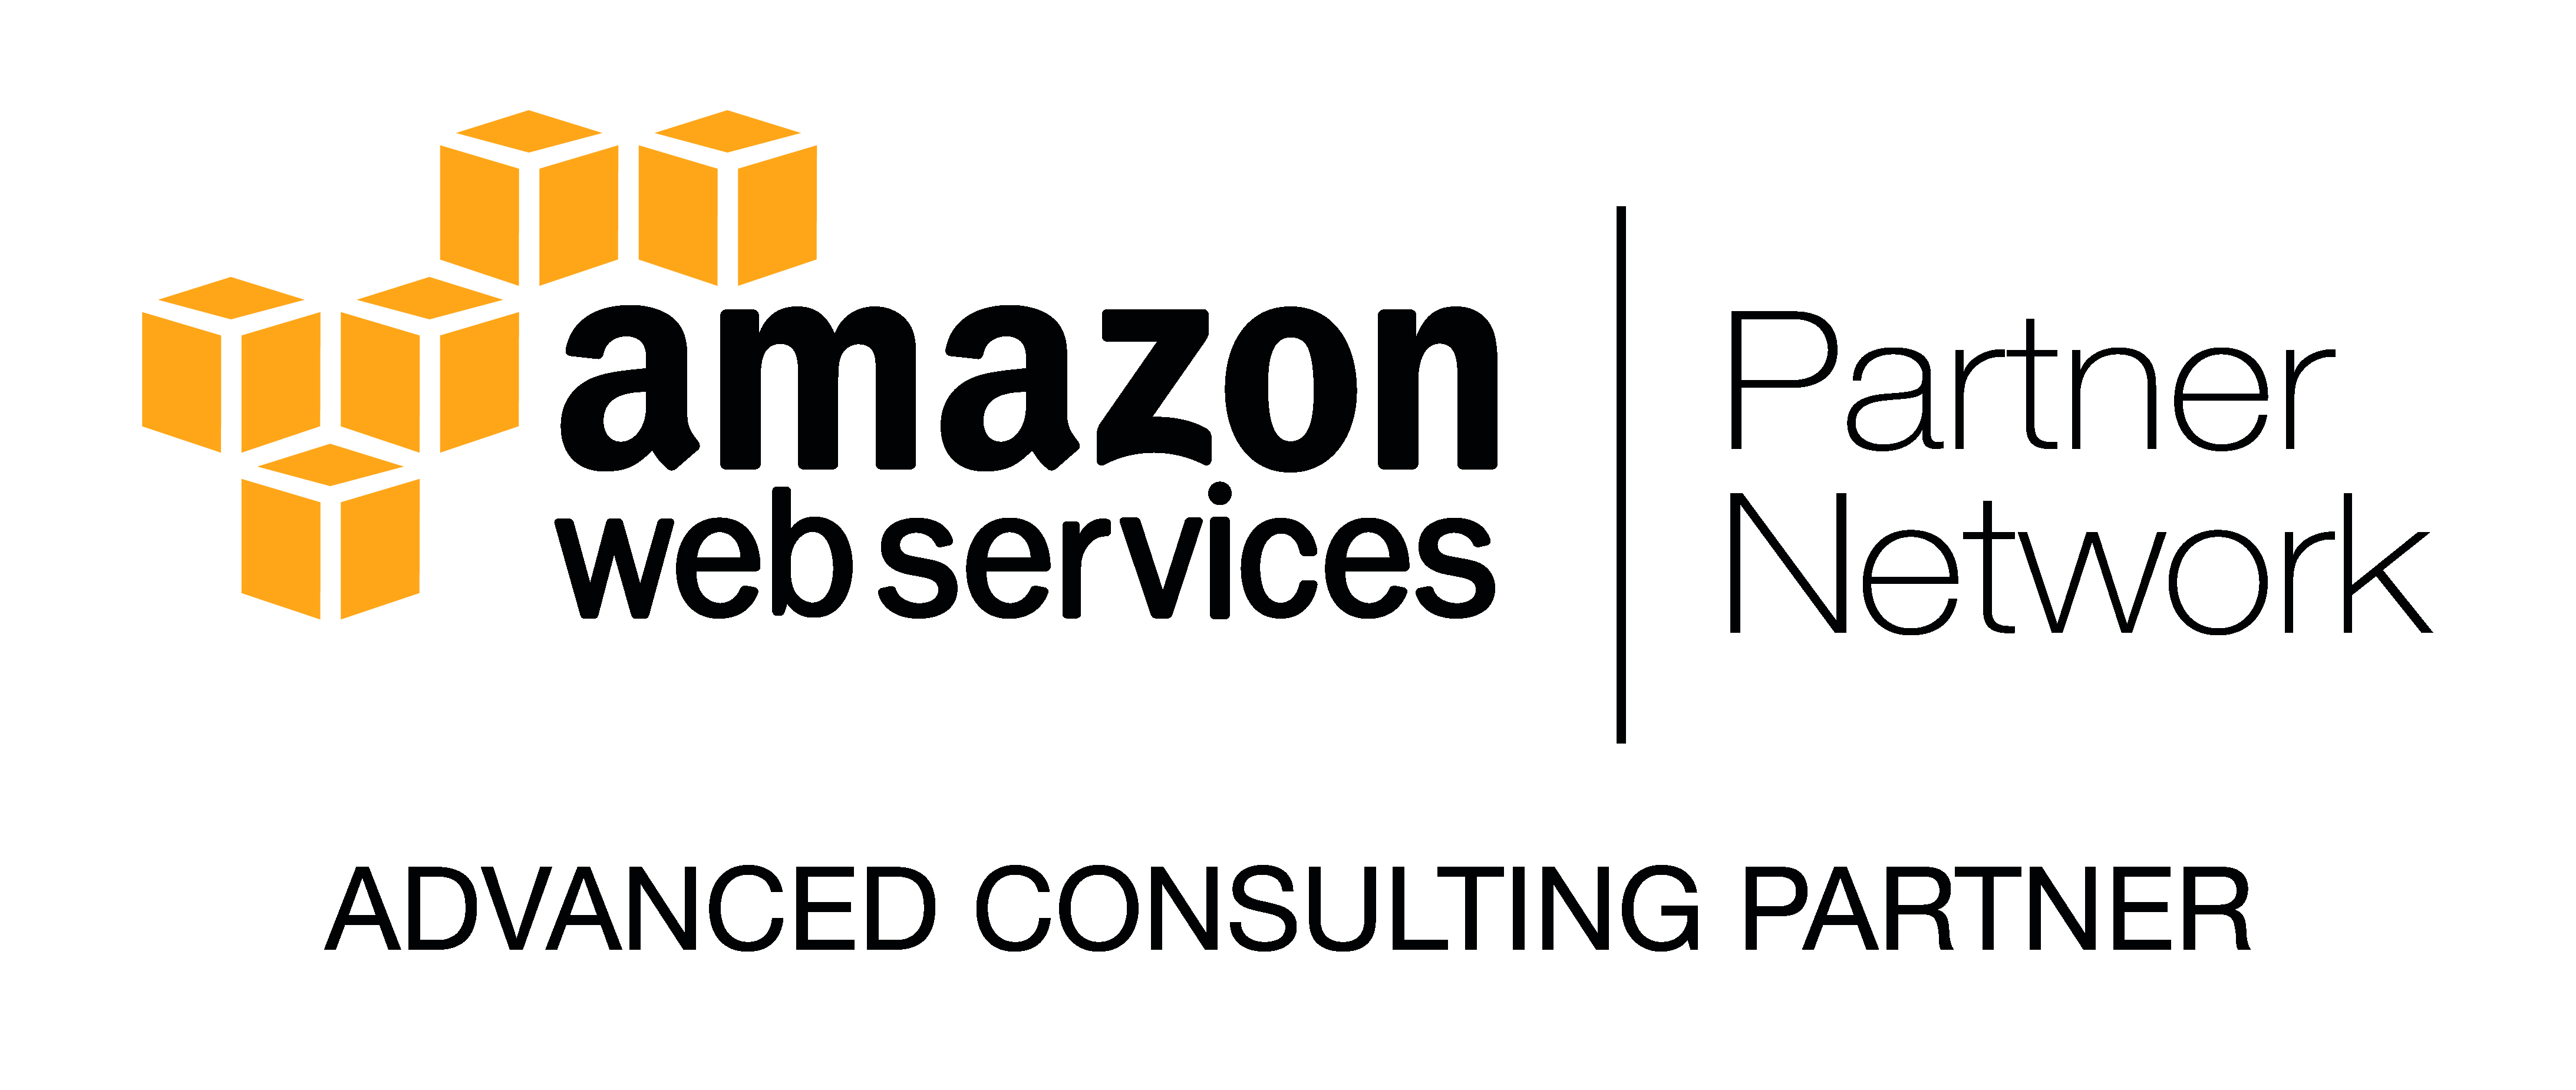 Besserer Support, Schnellere Realisierung In Der Amazon Cloud: The Unbelievable Machine Company Ist AWS Advanced Partner